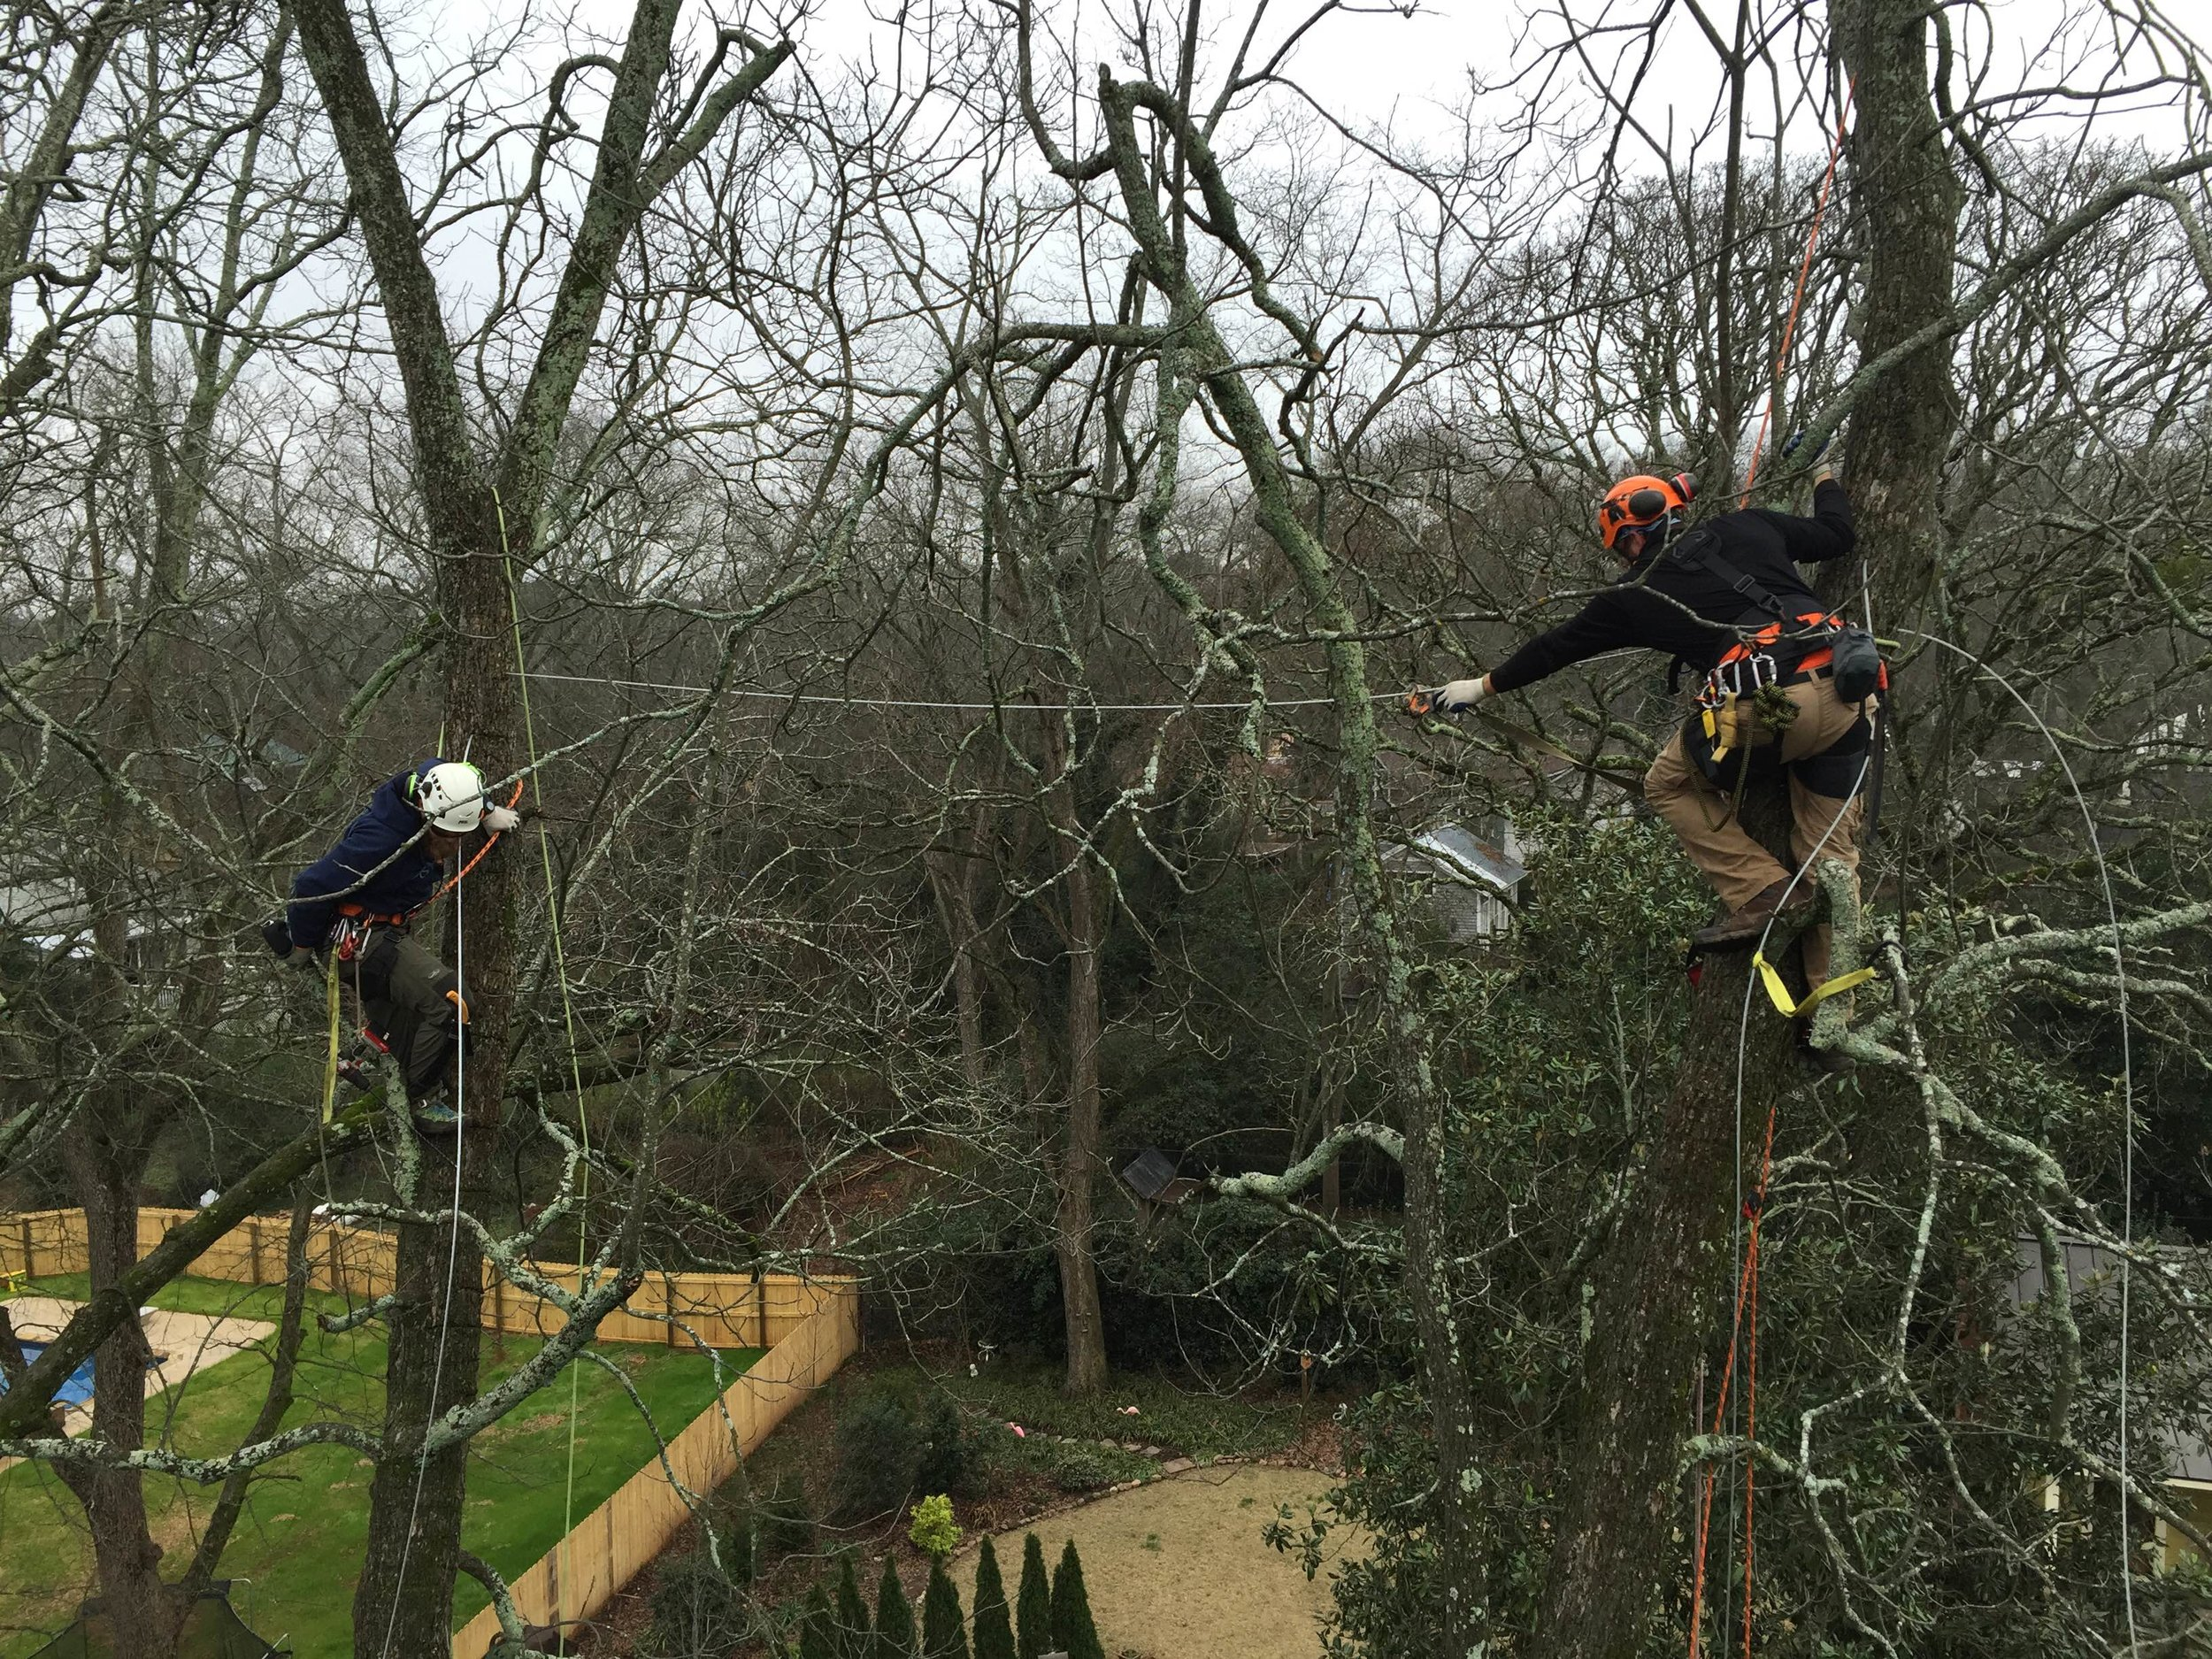 New Urban Forestry employees work together to properly install a tree cable